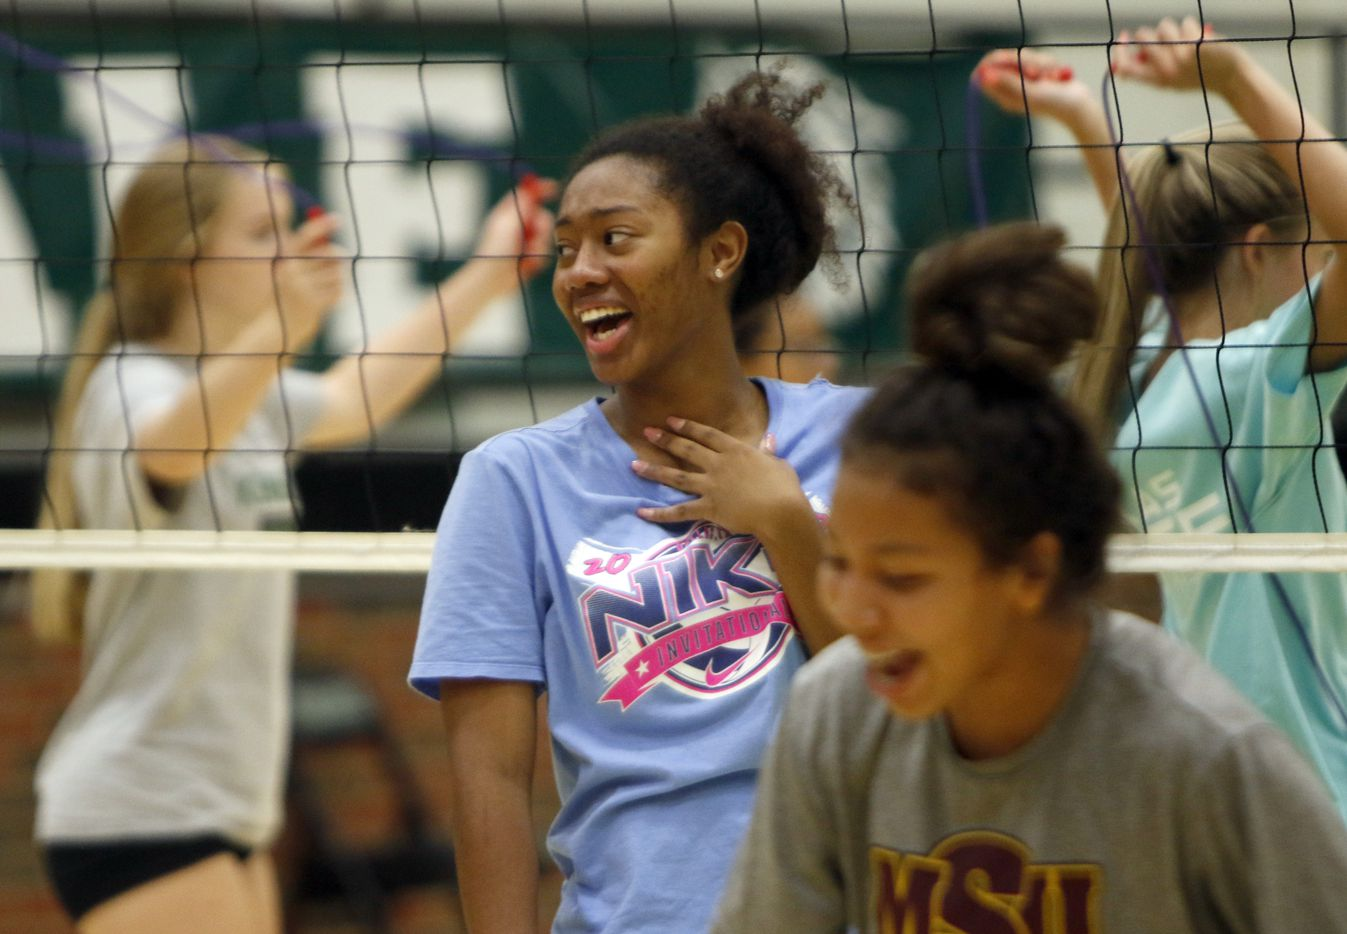 Alex Youngblood shares her excitement with teammates during conditioning drills in conjunction with the season opening volleyball practice for the Kennedale Lady Kats. Under the direction of head coach Kelly Carl, the team conducted their drills Kennedale High School in Kennedale on August 03, 2020.(Steve Hamm/ Special Contributor)